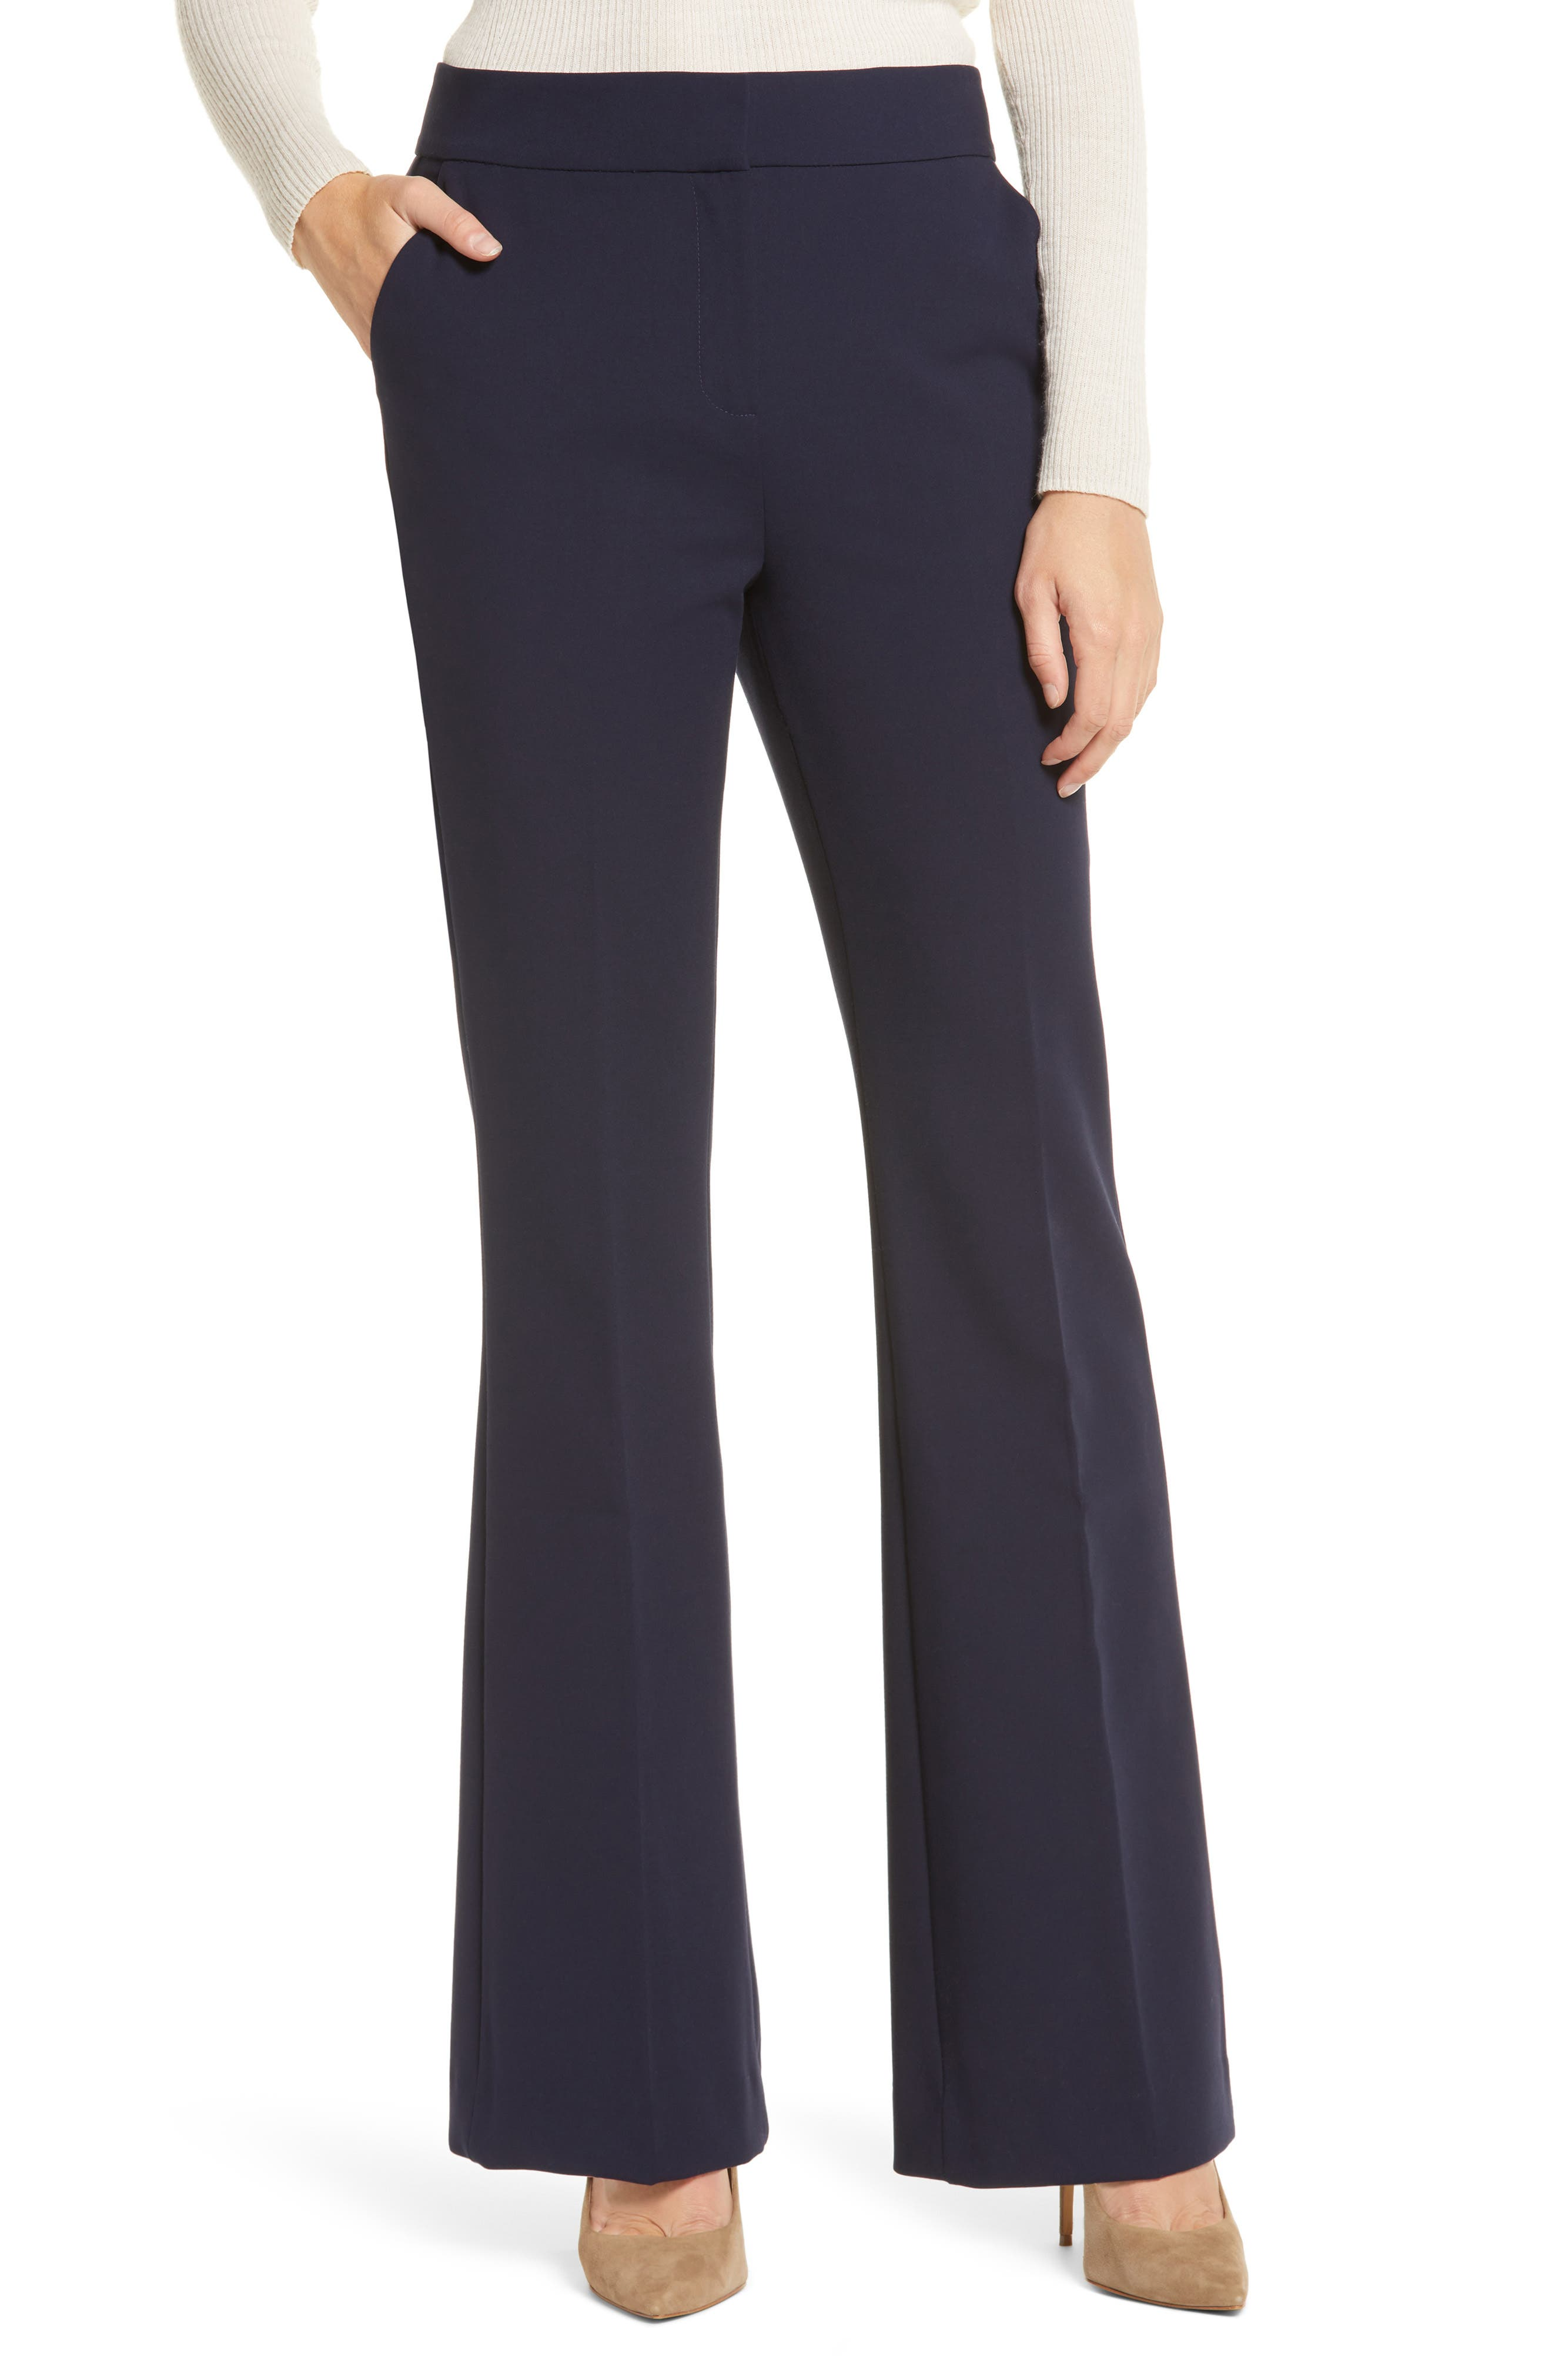 A flat front, flared legs and crisply pressed creases coordinate to create this pair of pants that add comfort into the workwear-update equation. Style Name: Halogen Flare Leg Pants (Regular & Petite). Style Number: 6011444. Available in stores.